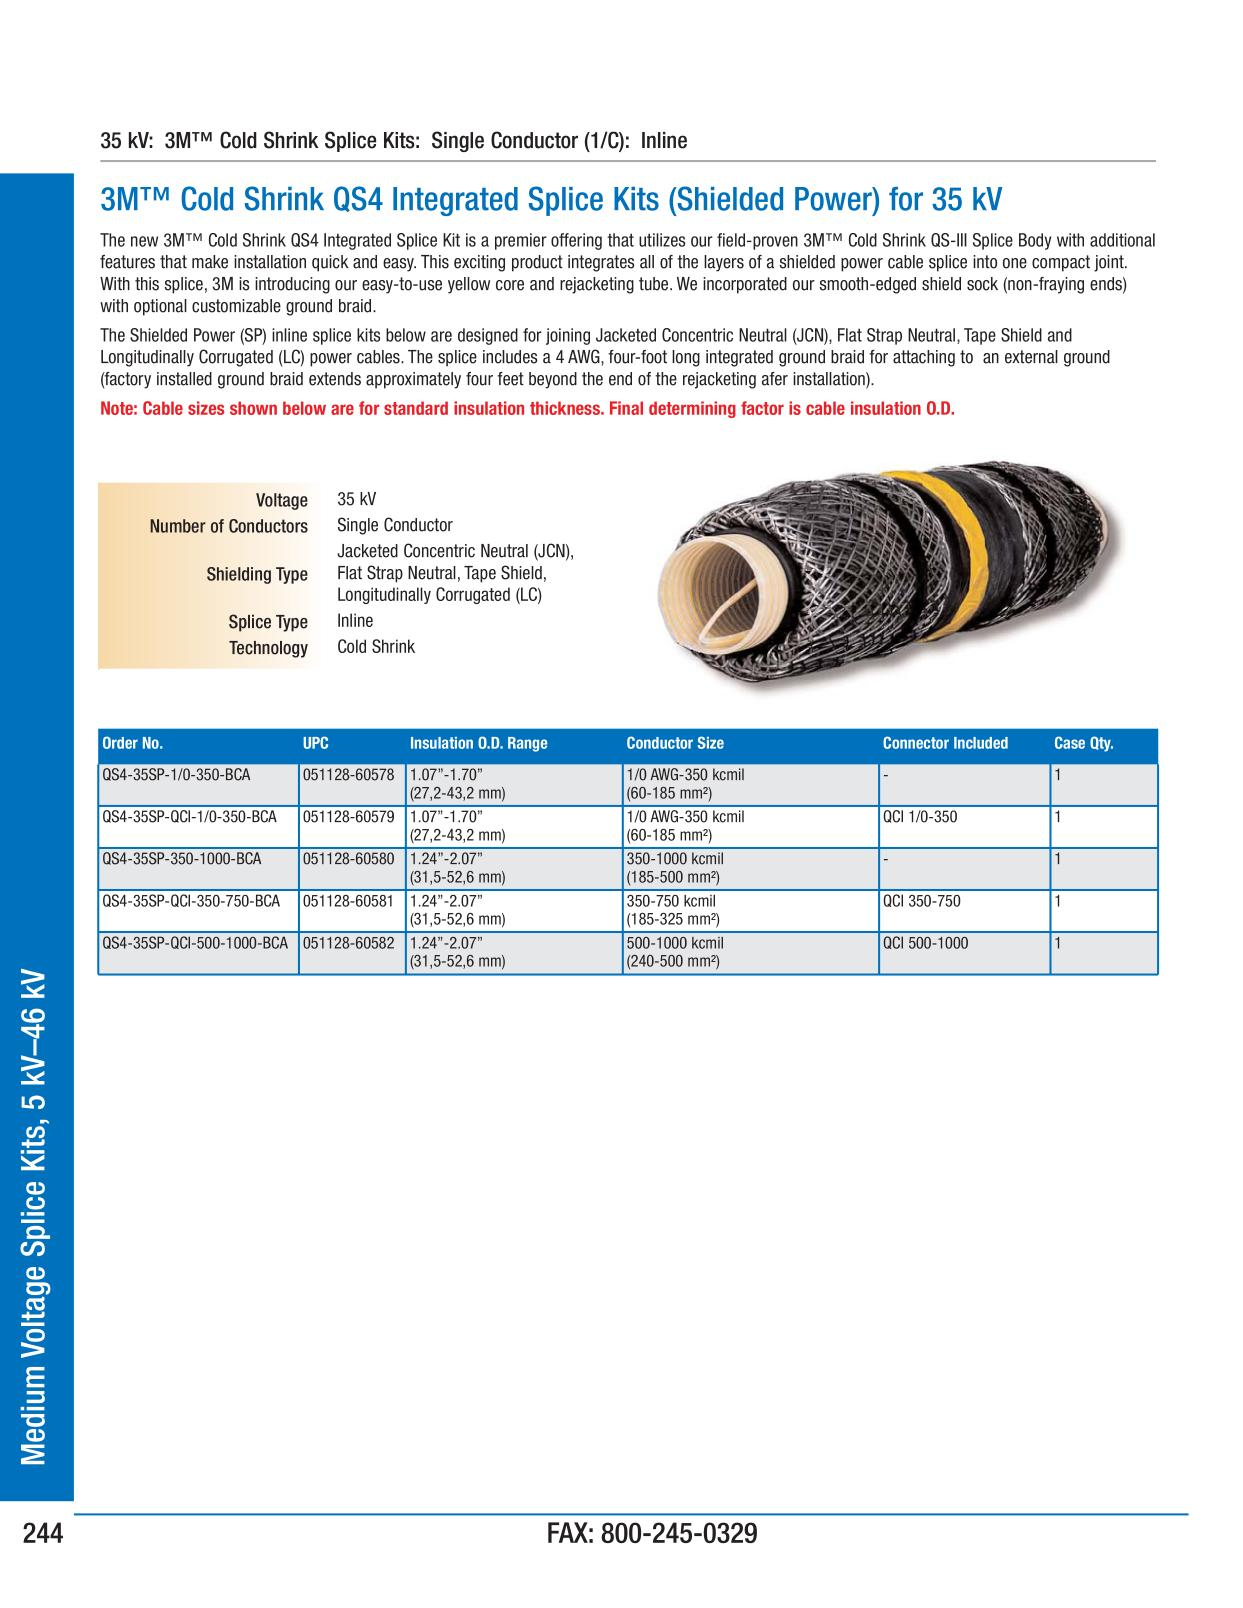 Medium voltage splice kits 5 kv 46 kv 3m electrical products medium voltage splice kits 5 kv 46 kv 3m electrical products page 245 keyboard keysfo Images